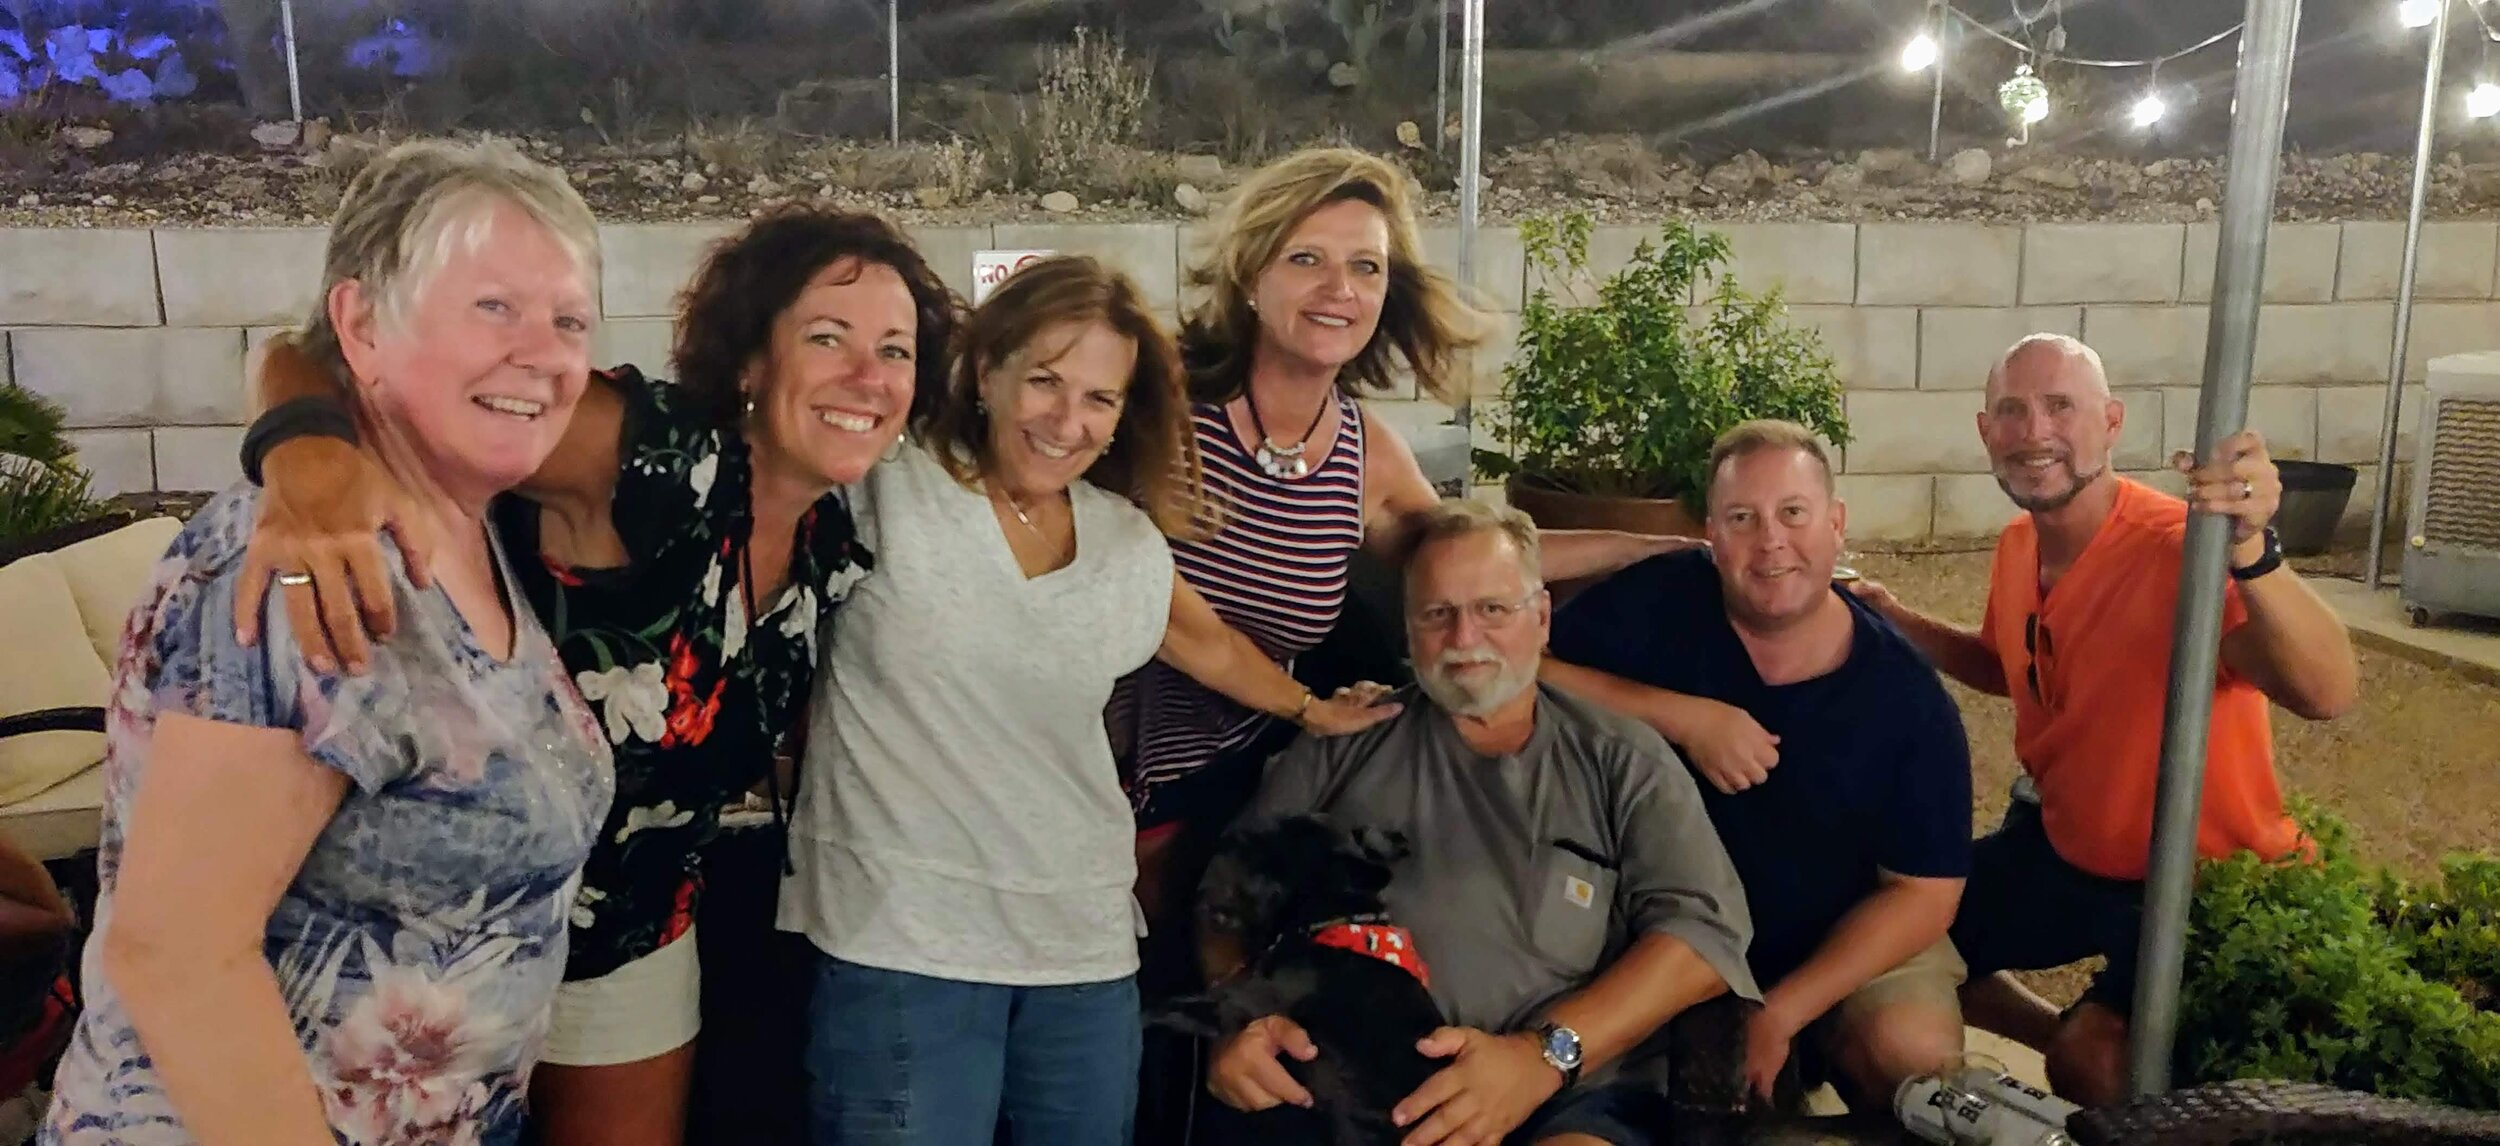 """Me and a few of my peeps at """"Three Canyon's Beer and Wine Garden"""" in the Catalina Foothills. (I'm the good looking guy in the orange shirt)."""